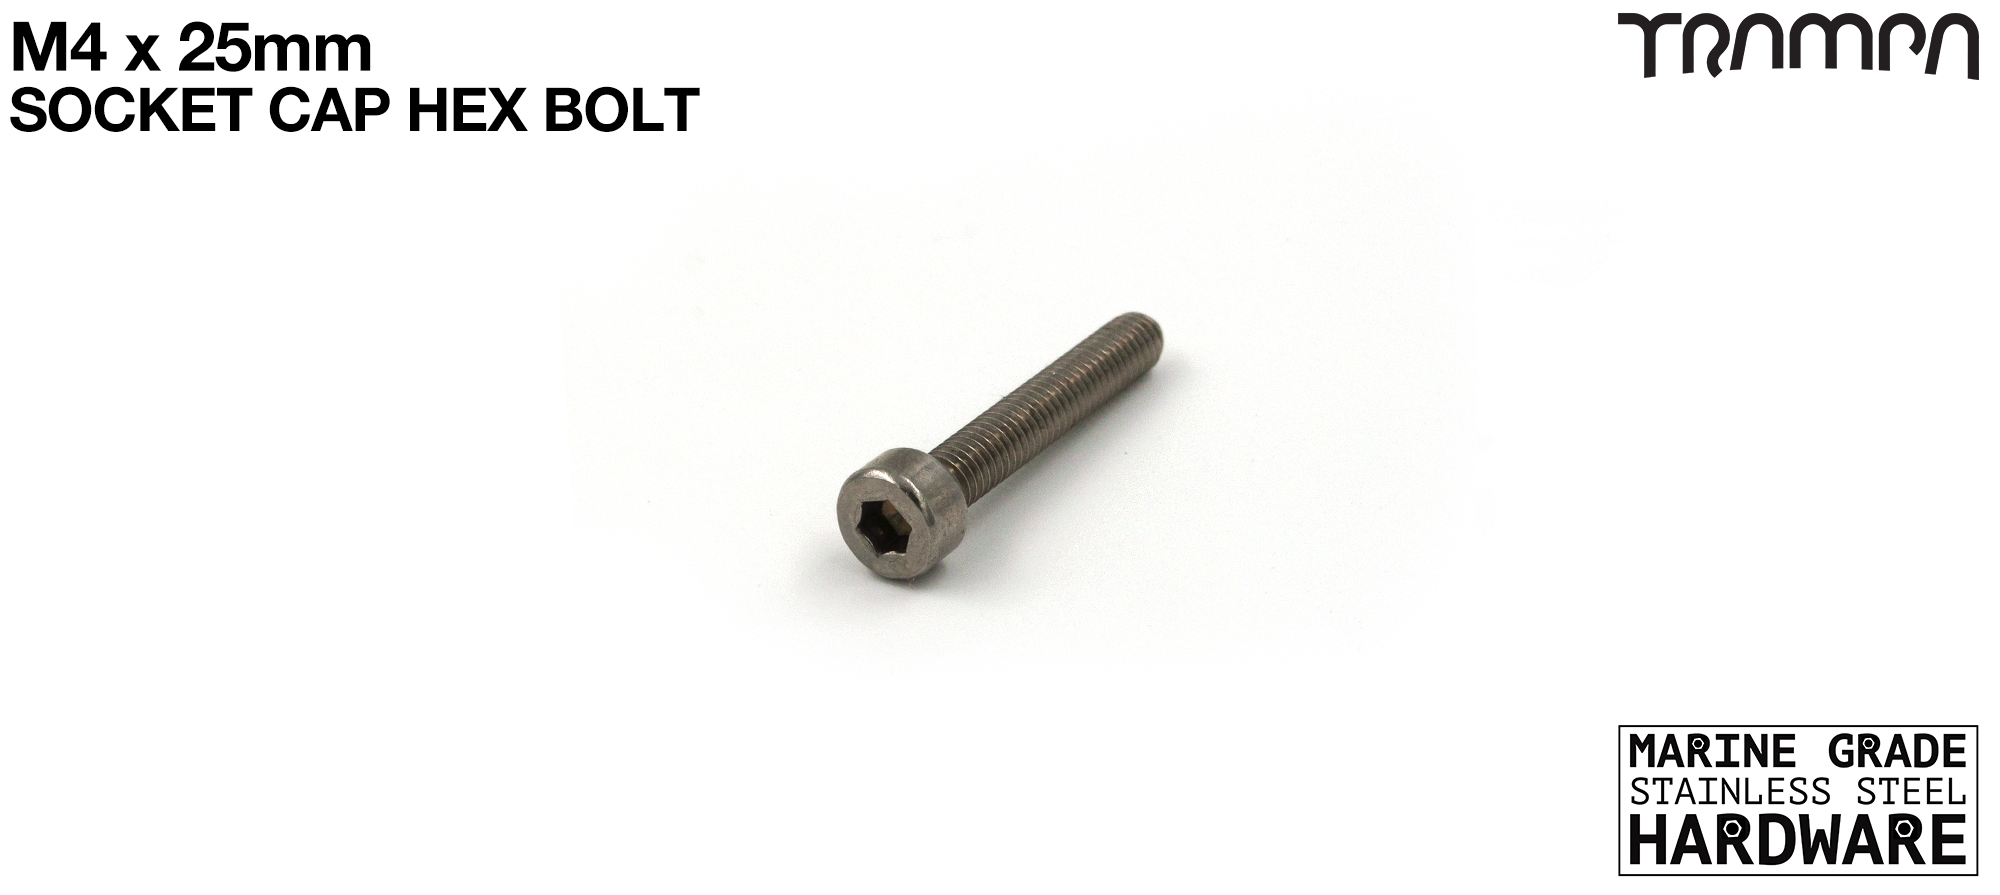 M4 x 25mm Socket Capped Head Bolt ISO 4762 Marine Grade Stainless Steel